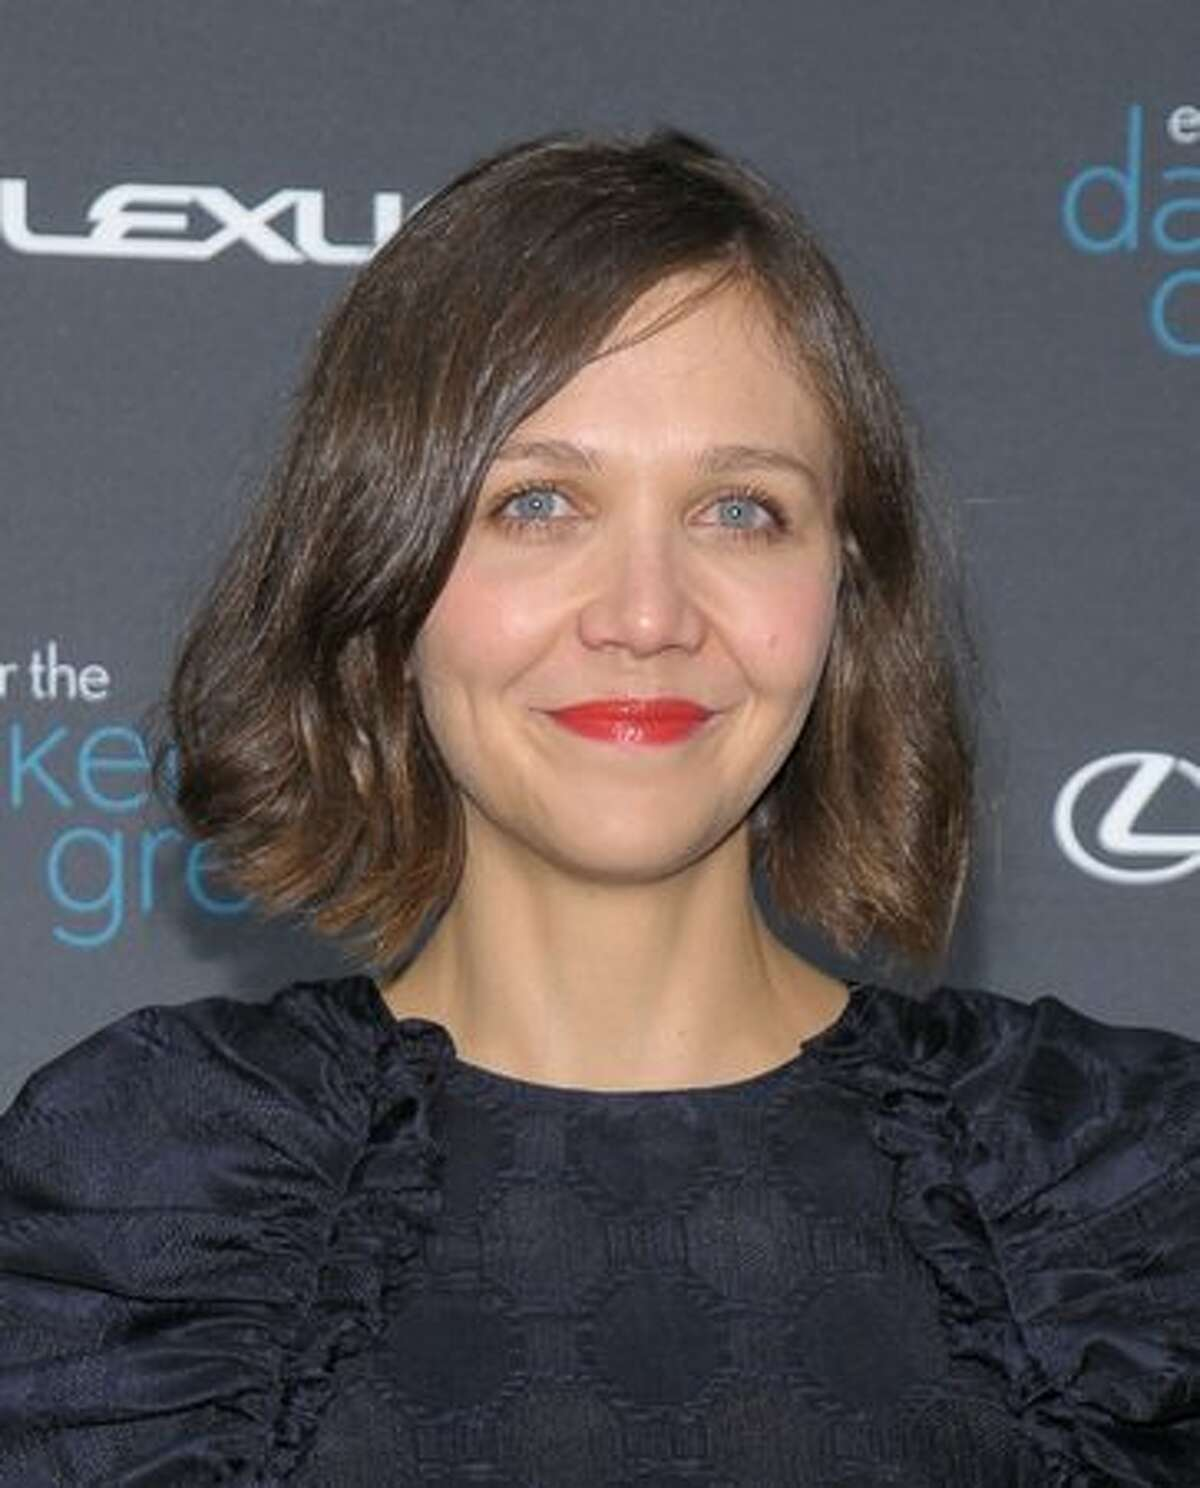 Actress Maggie Gyllenhaal attends The Darker Side of Green climate change debate at Skylight West in New York City.